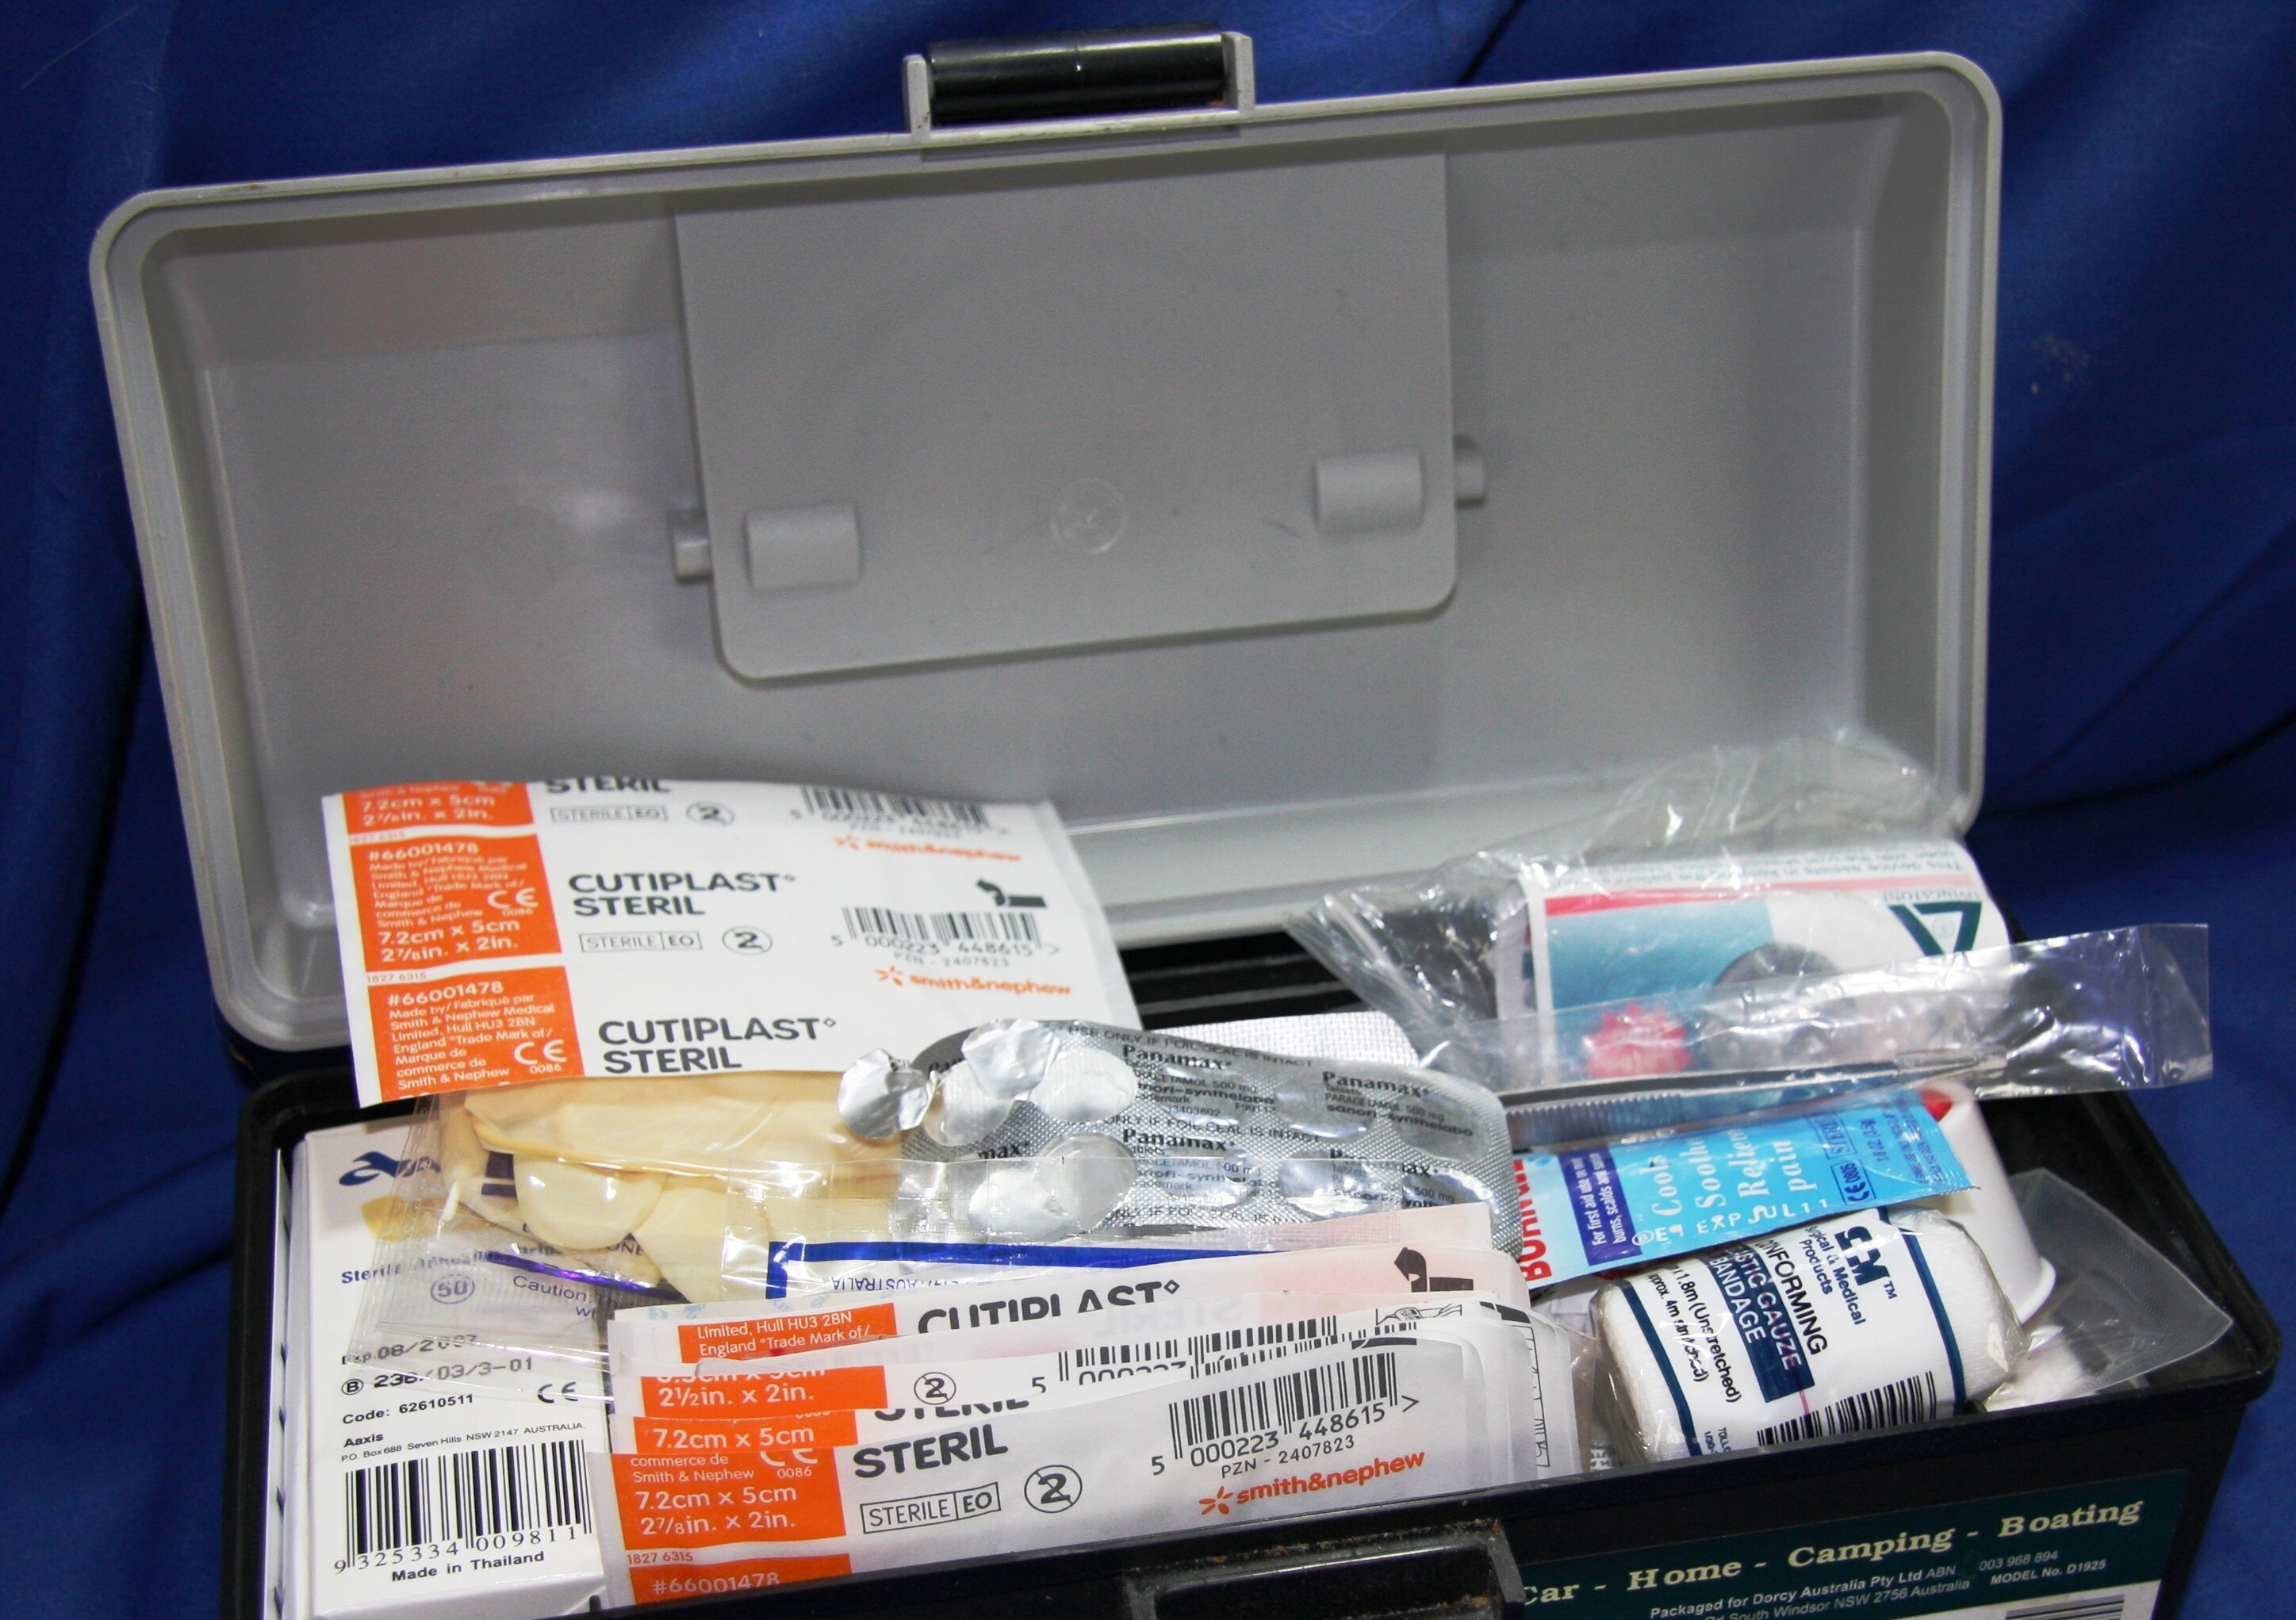 The Need for a Travel Medical Kit